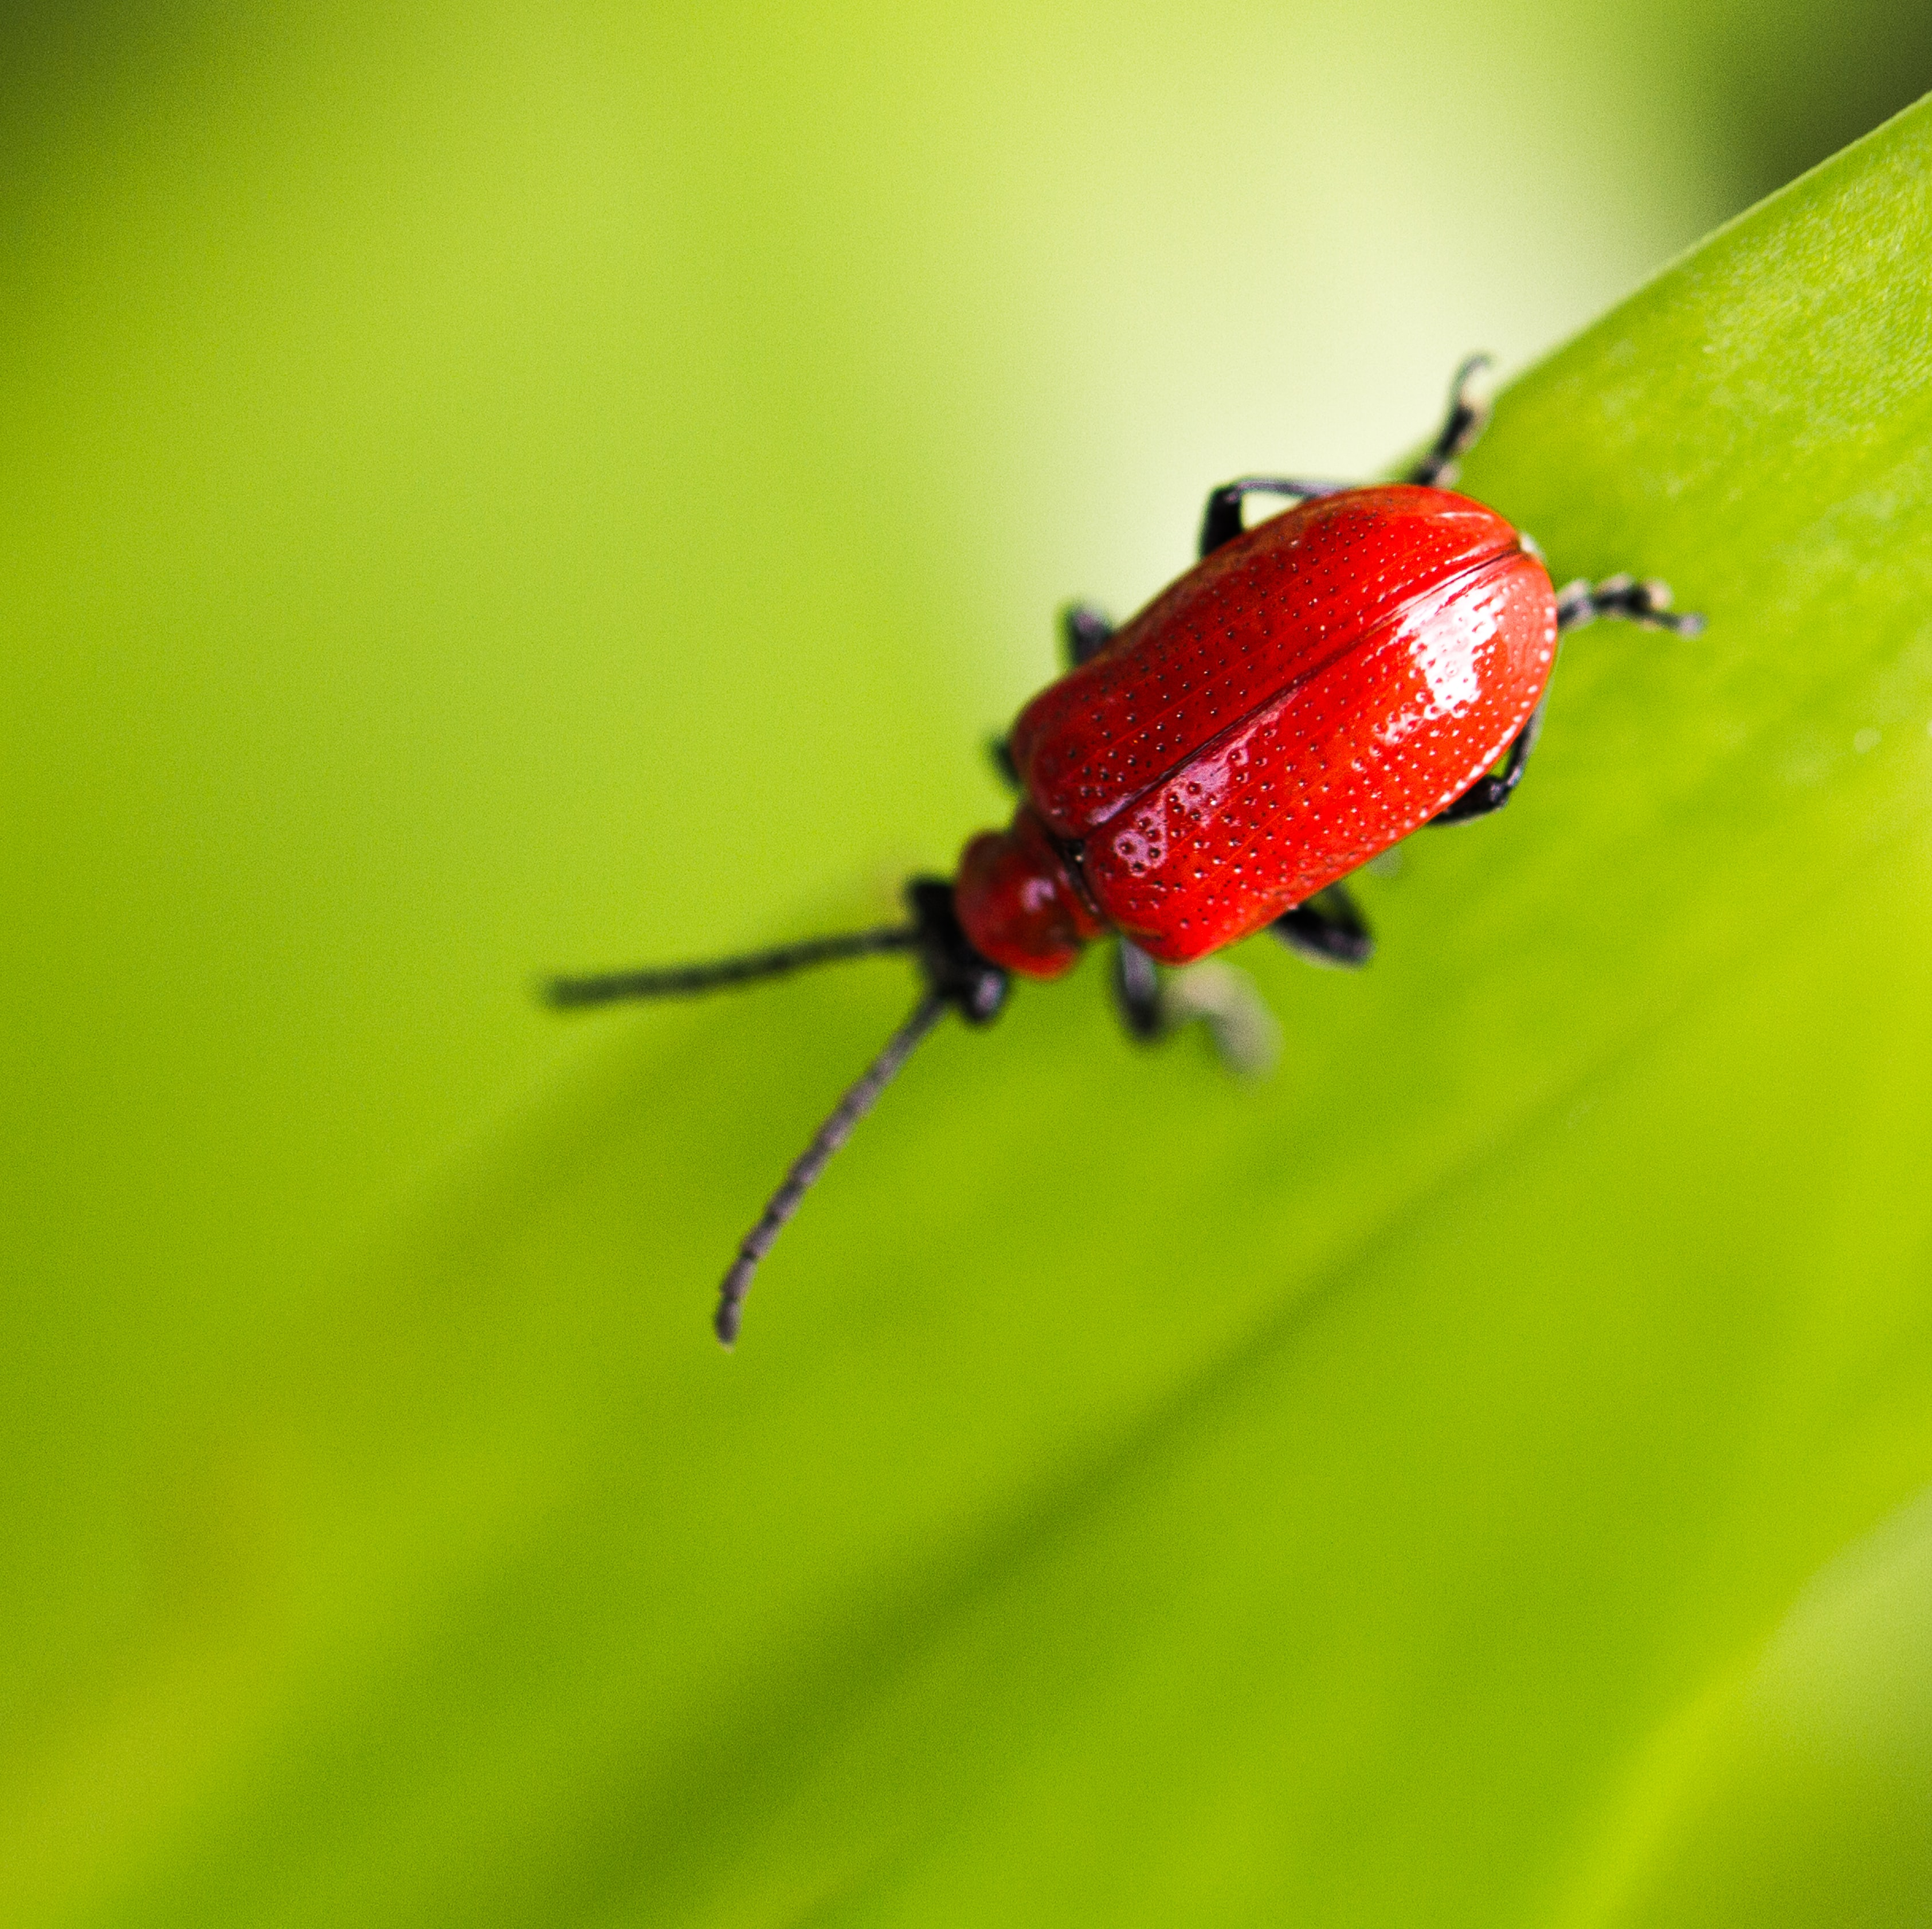 Red beetle climbs on a green leafy plant